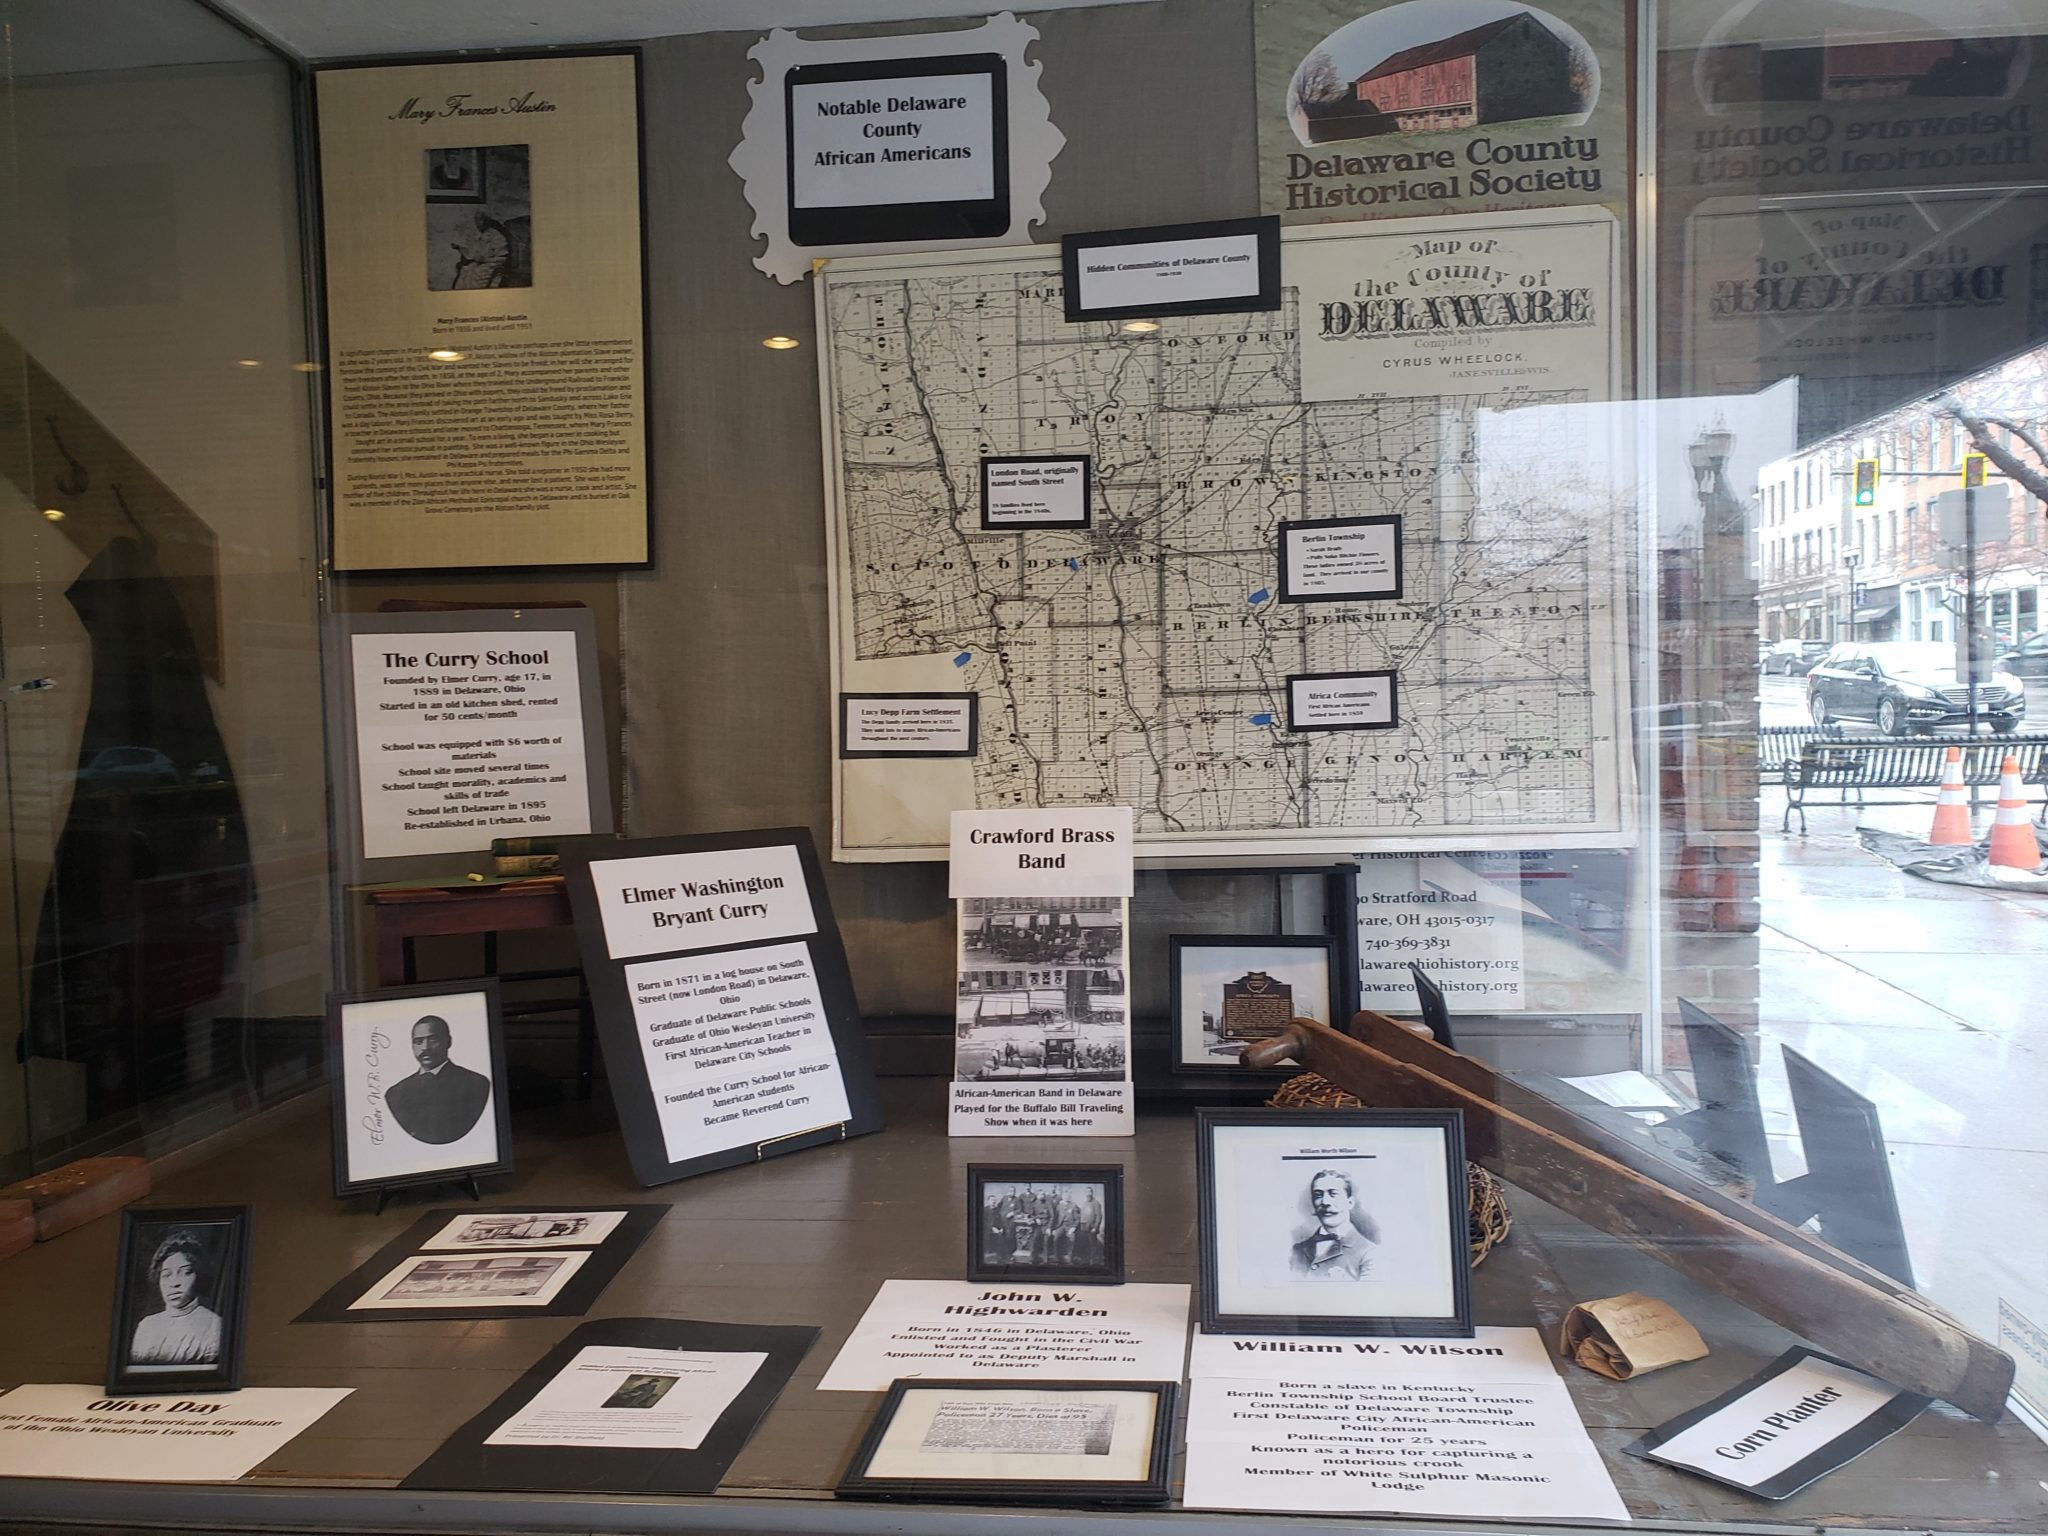 Hair Studio Window - Exhibit - Black History Month - Delaware County Historical Society